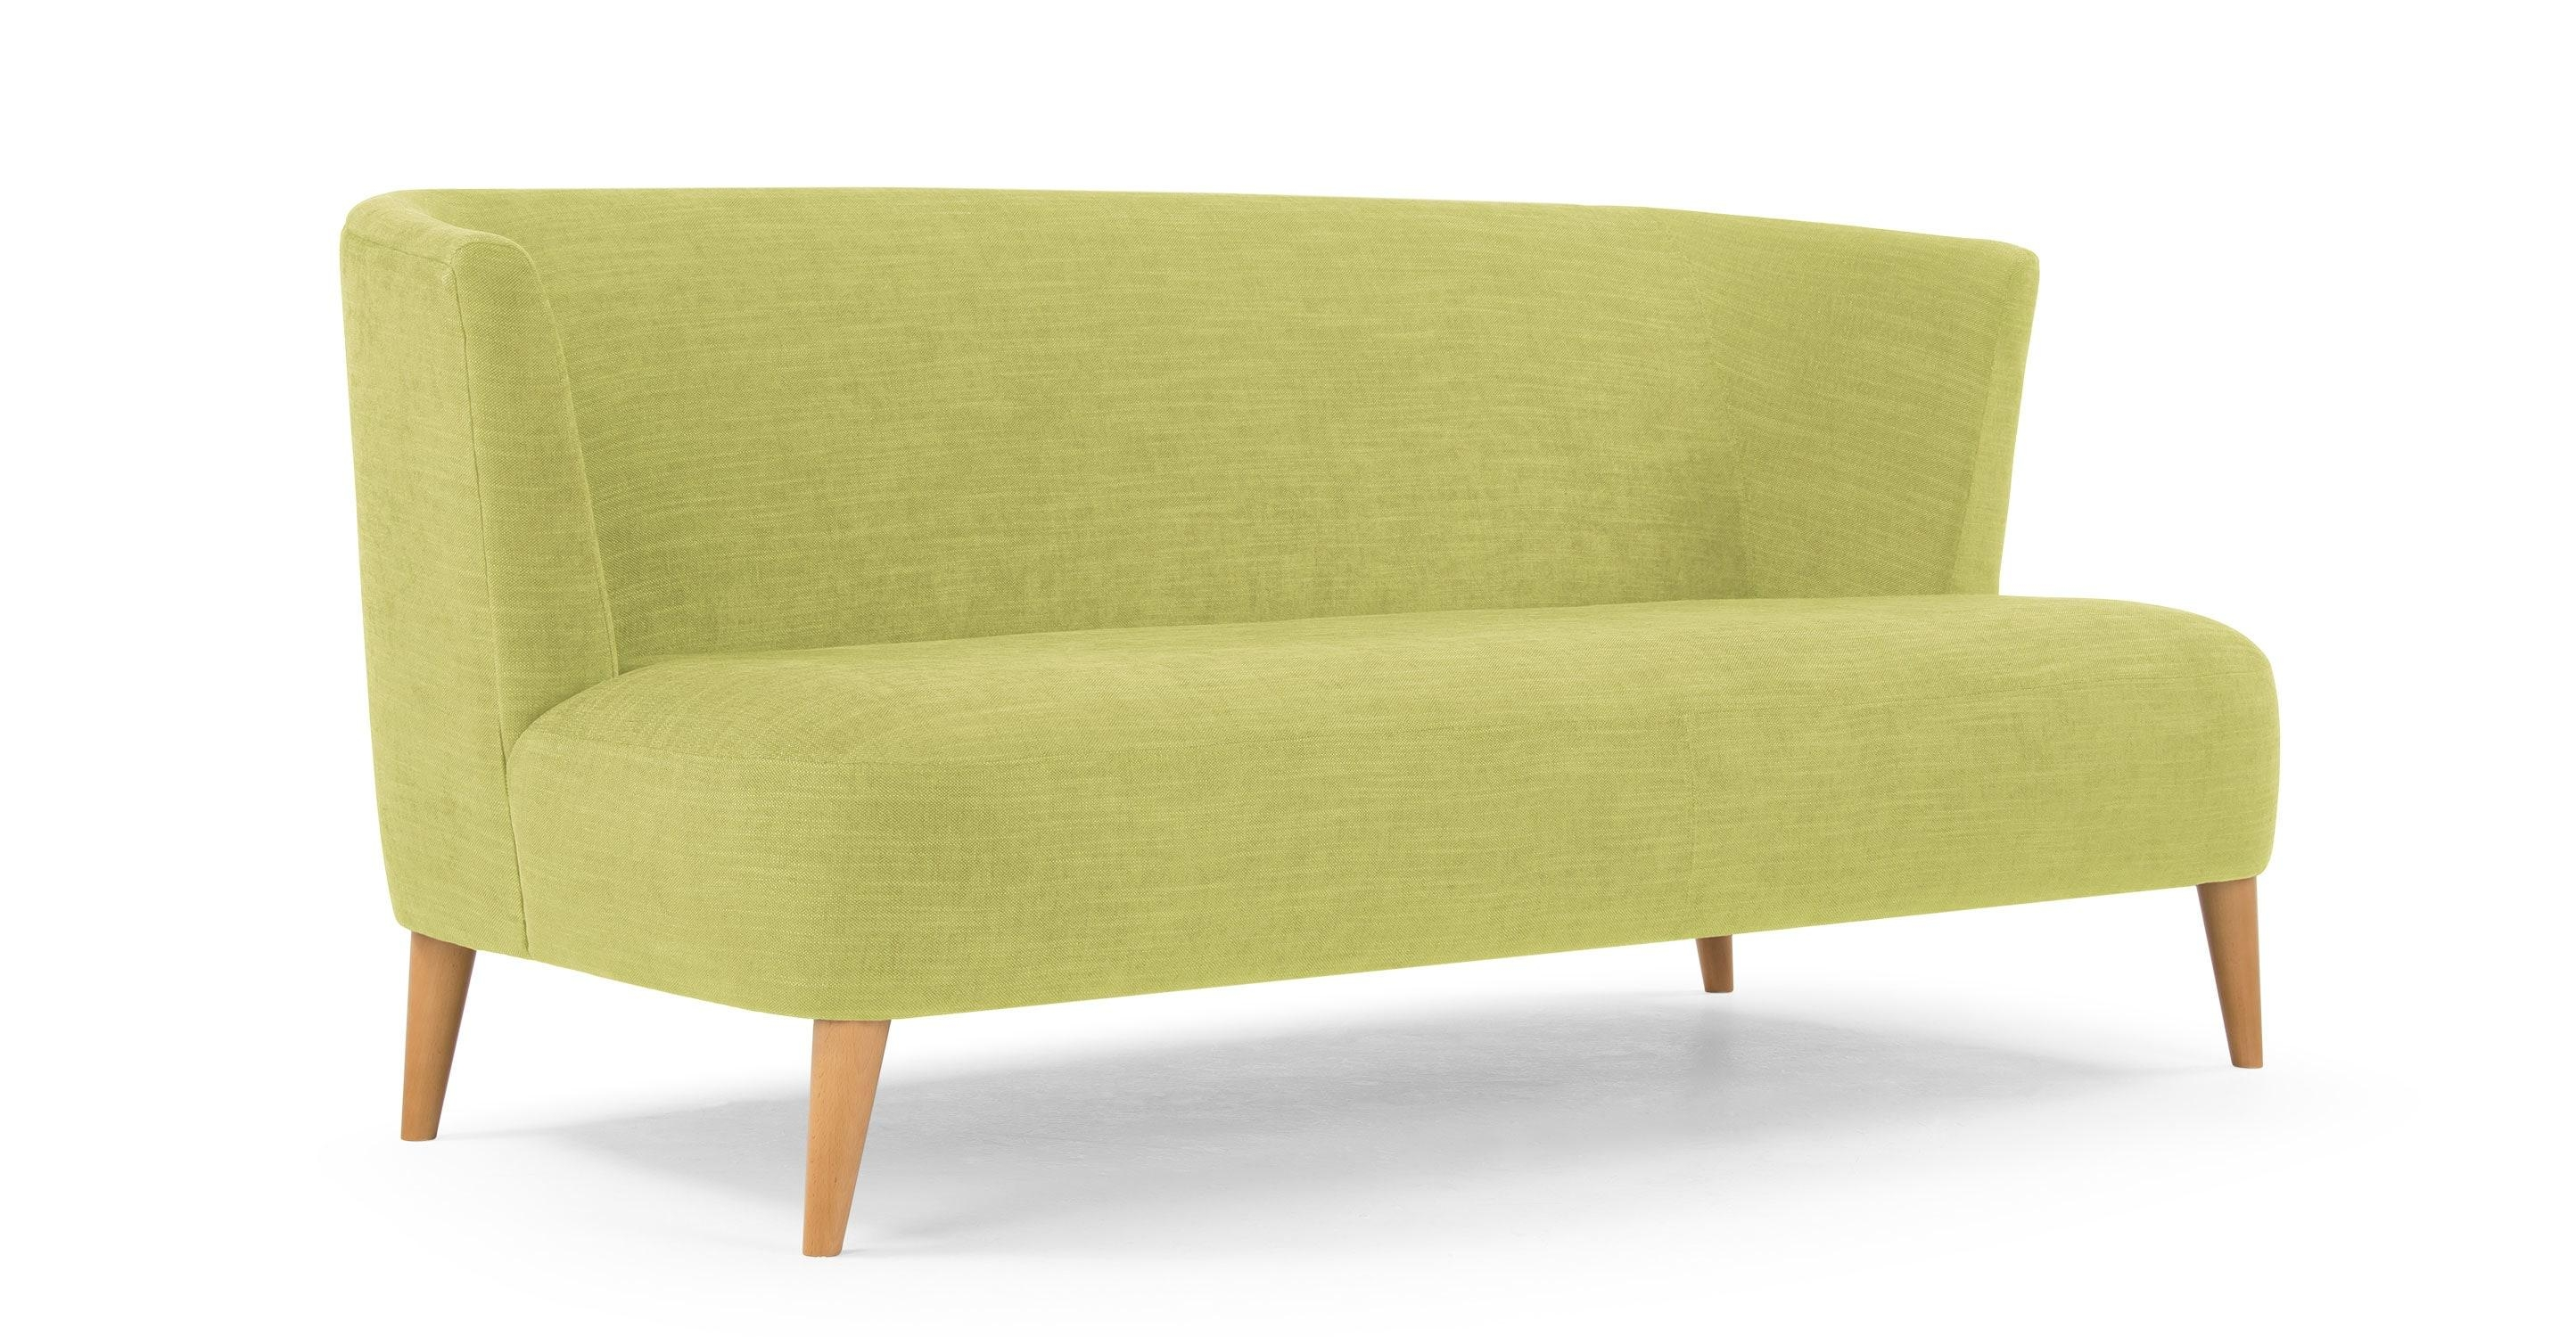 Chartreuse Sofa 27 With Chartreuse Sofa | Jinanhongyu With Regard To Chartreuse Sofas (View 8 of 20)